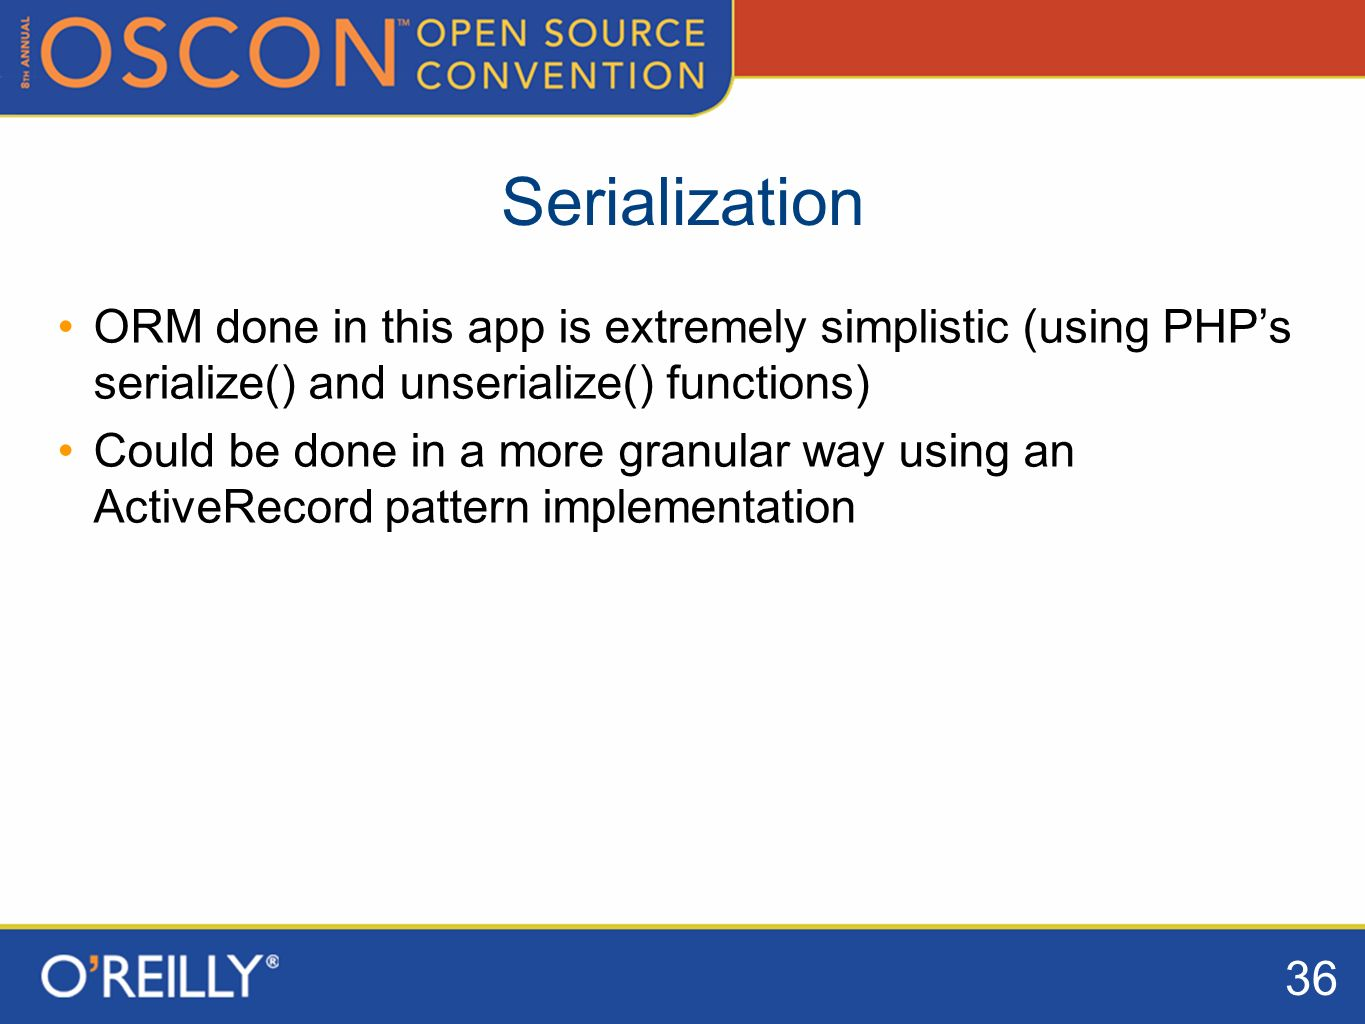 36 Serialization ORM done in this app is extremely simplistic (using PHPs serialize() and unserialize() functions) Could be done in a more granular way using an ActiveRecord pattern implementation